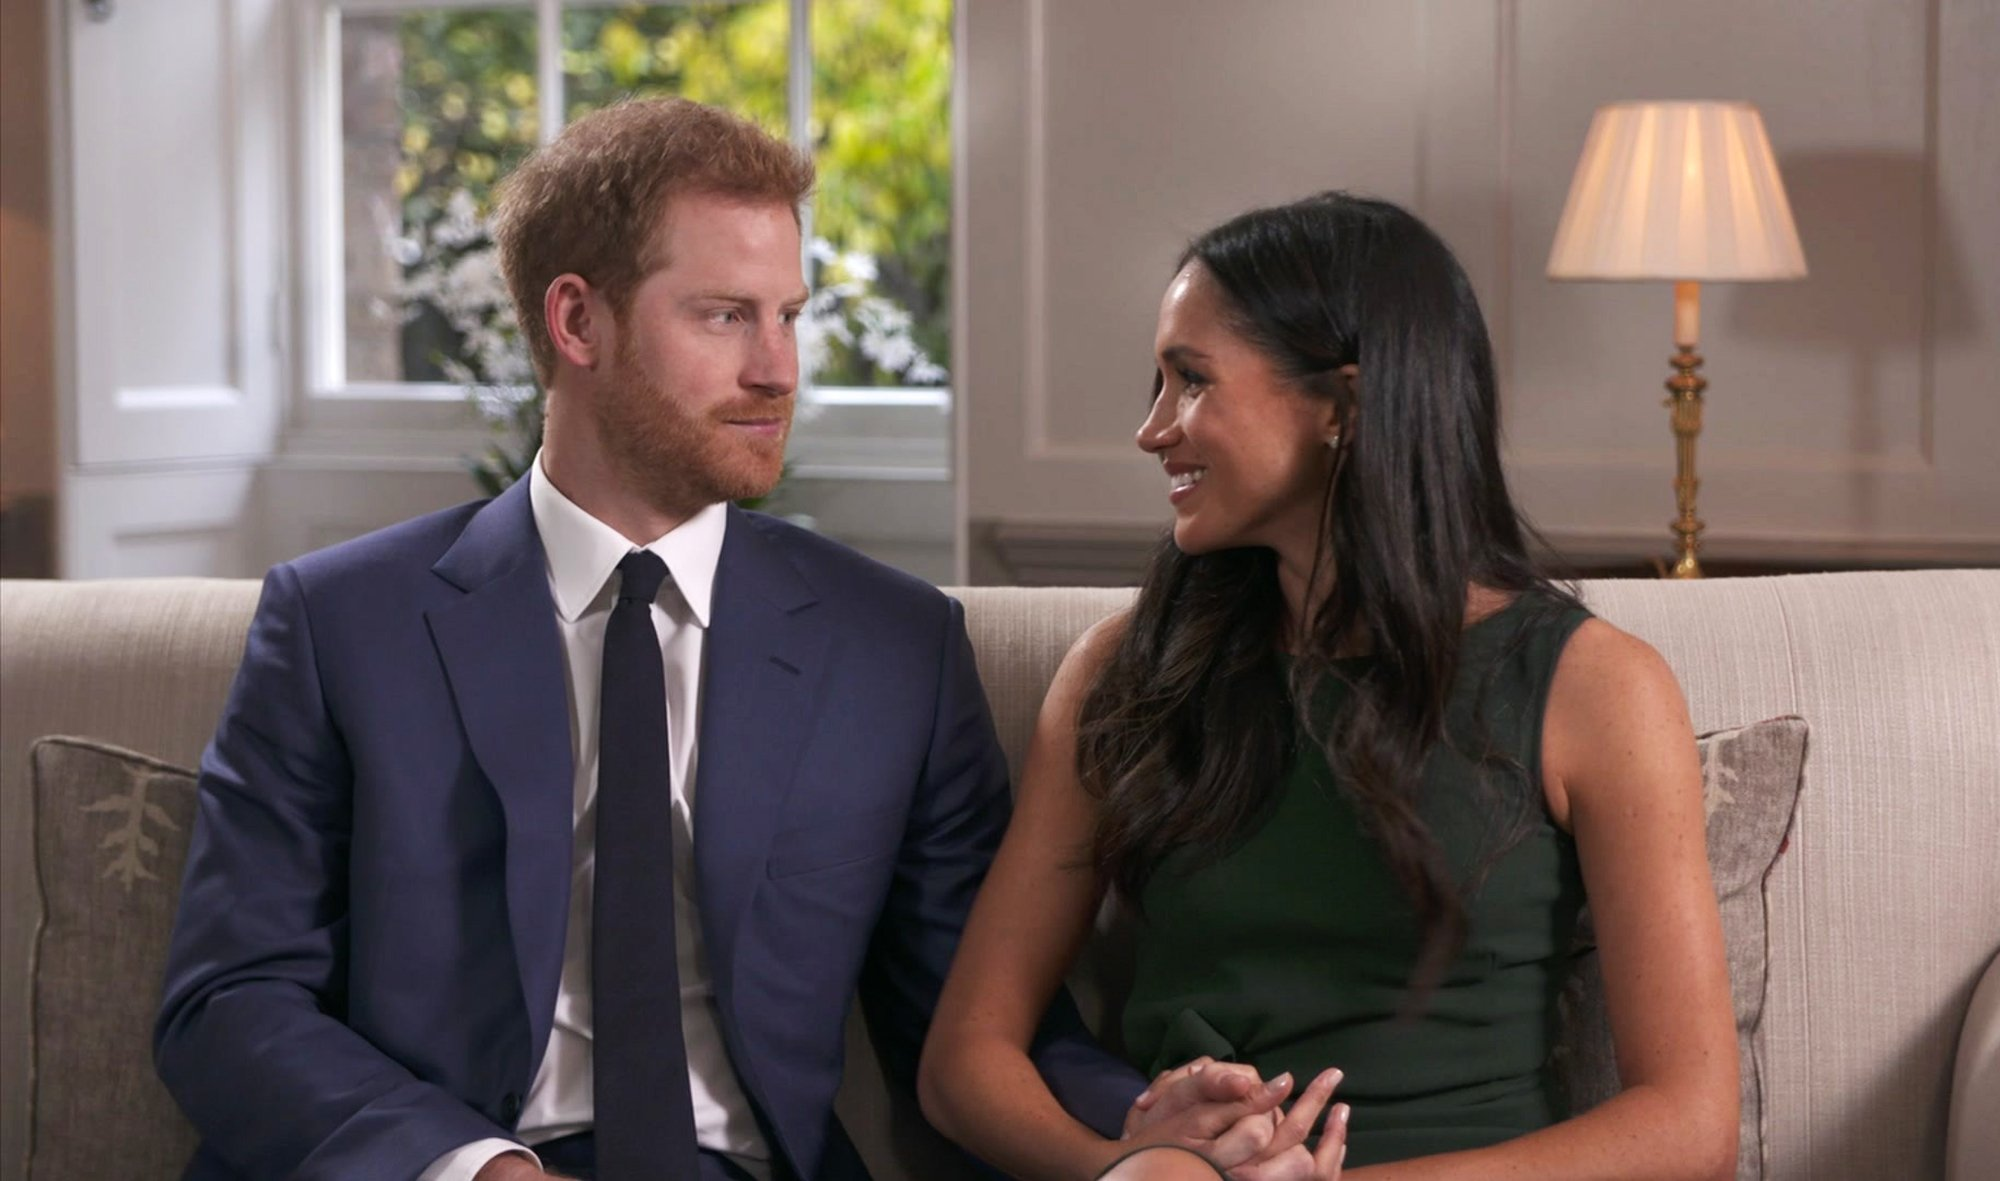 Meghan Markle has a new comedy movie coming out this year